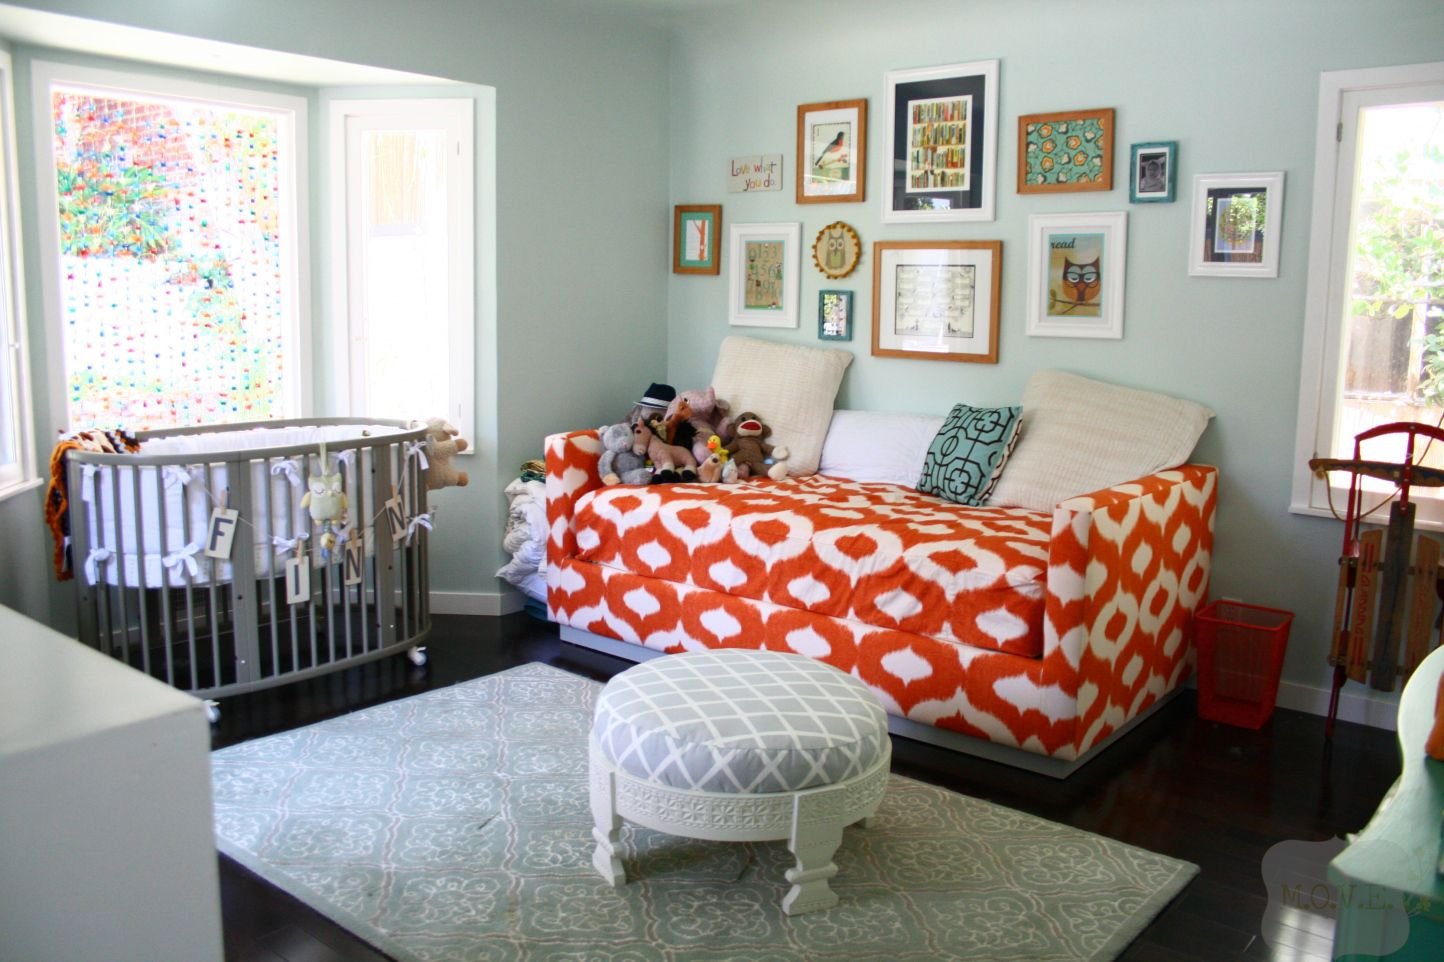 Sofa Bed For Baby Room Interior Paint Color Schemes Check More At Http Www Chulaniphotography